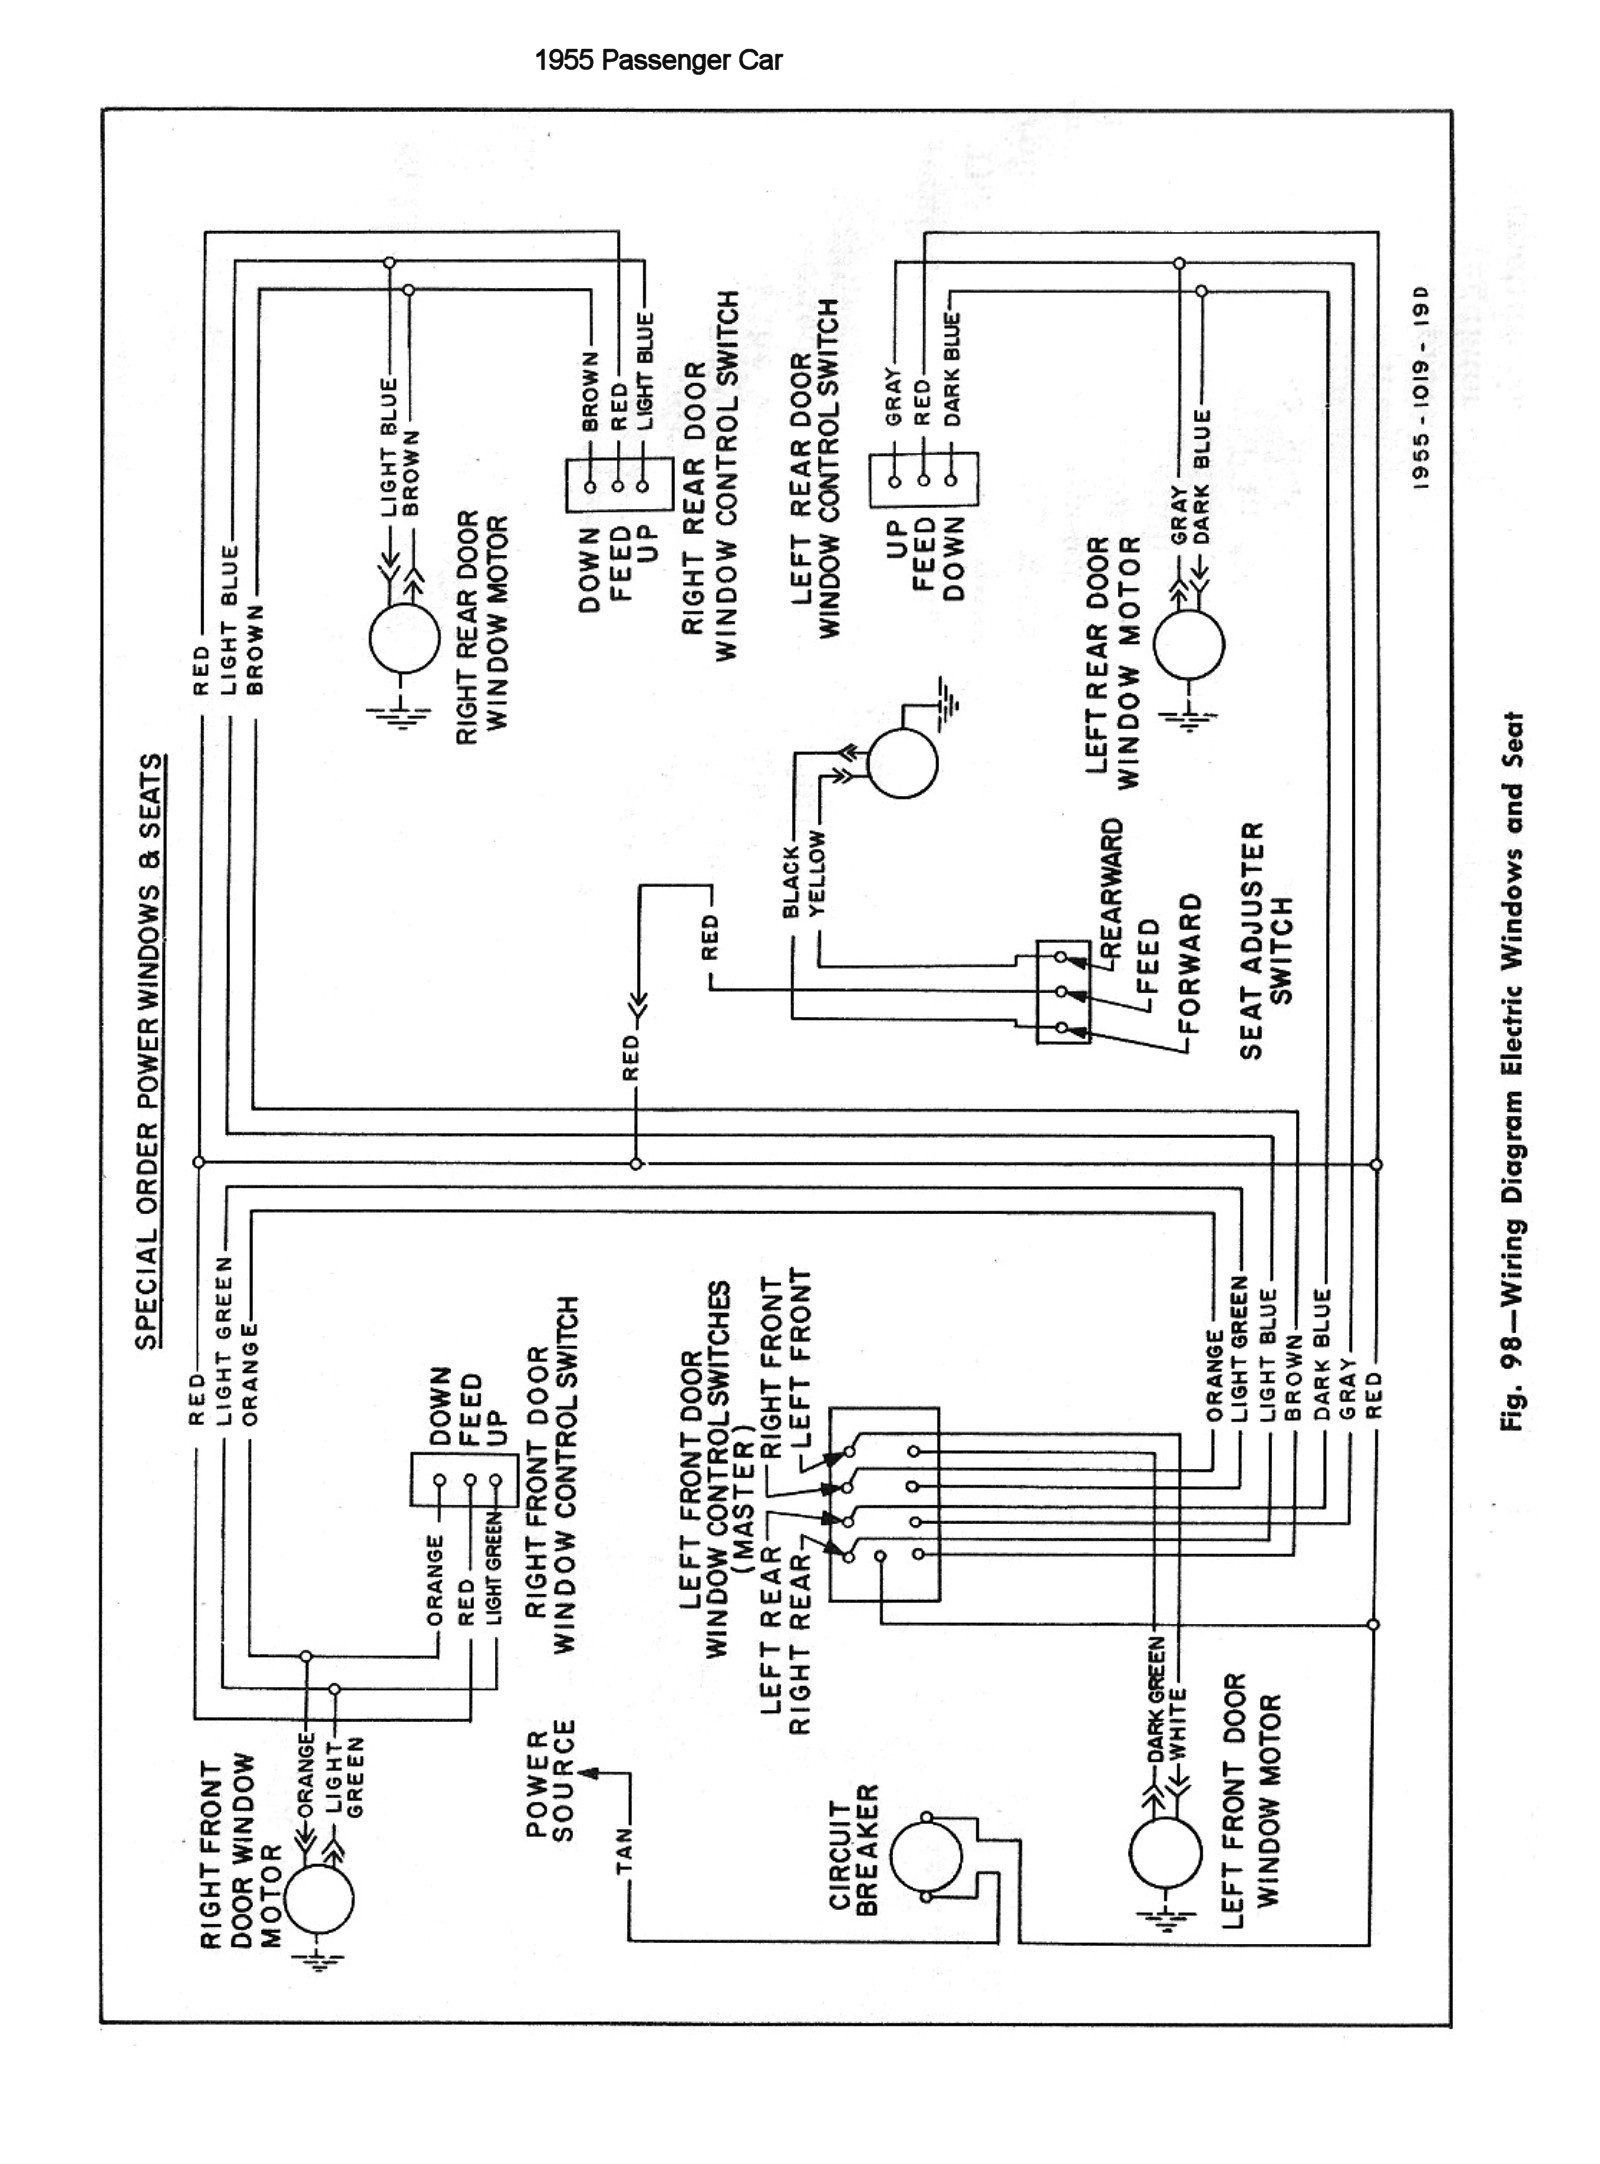 1955 chevy turn signal wiring diagram wiringdiagram org rh pinterest com 55 chevy truck turn signal wiring